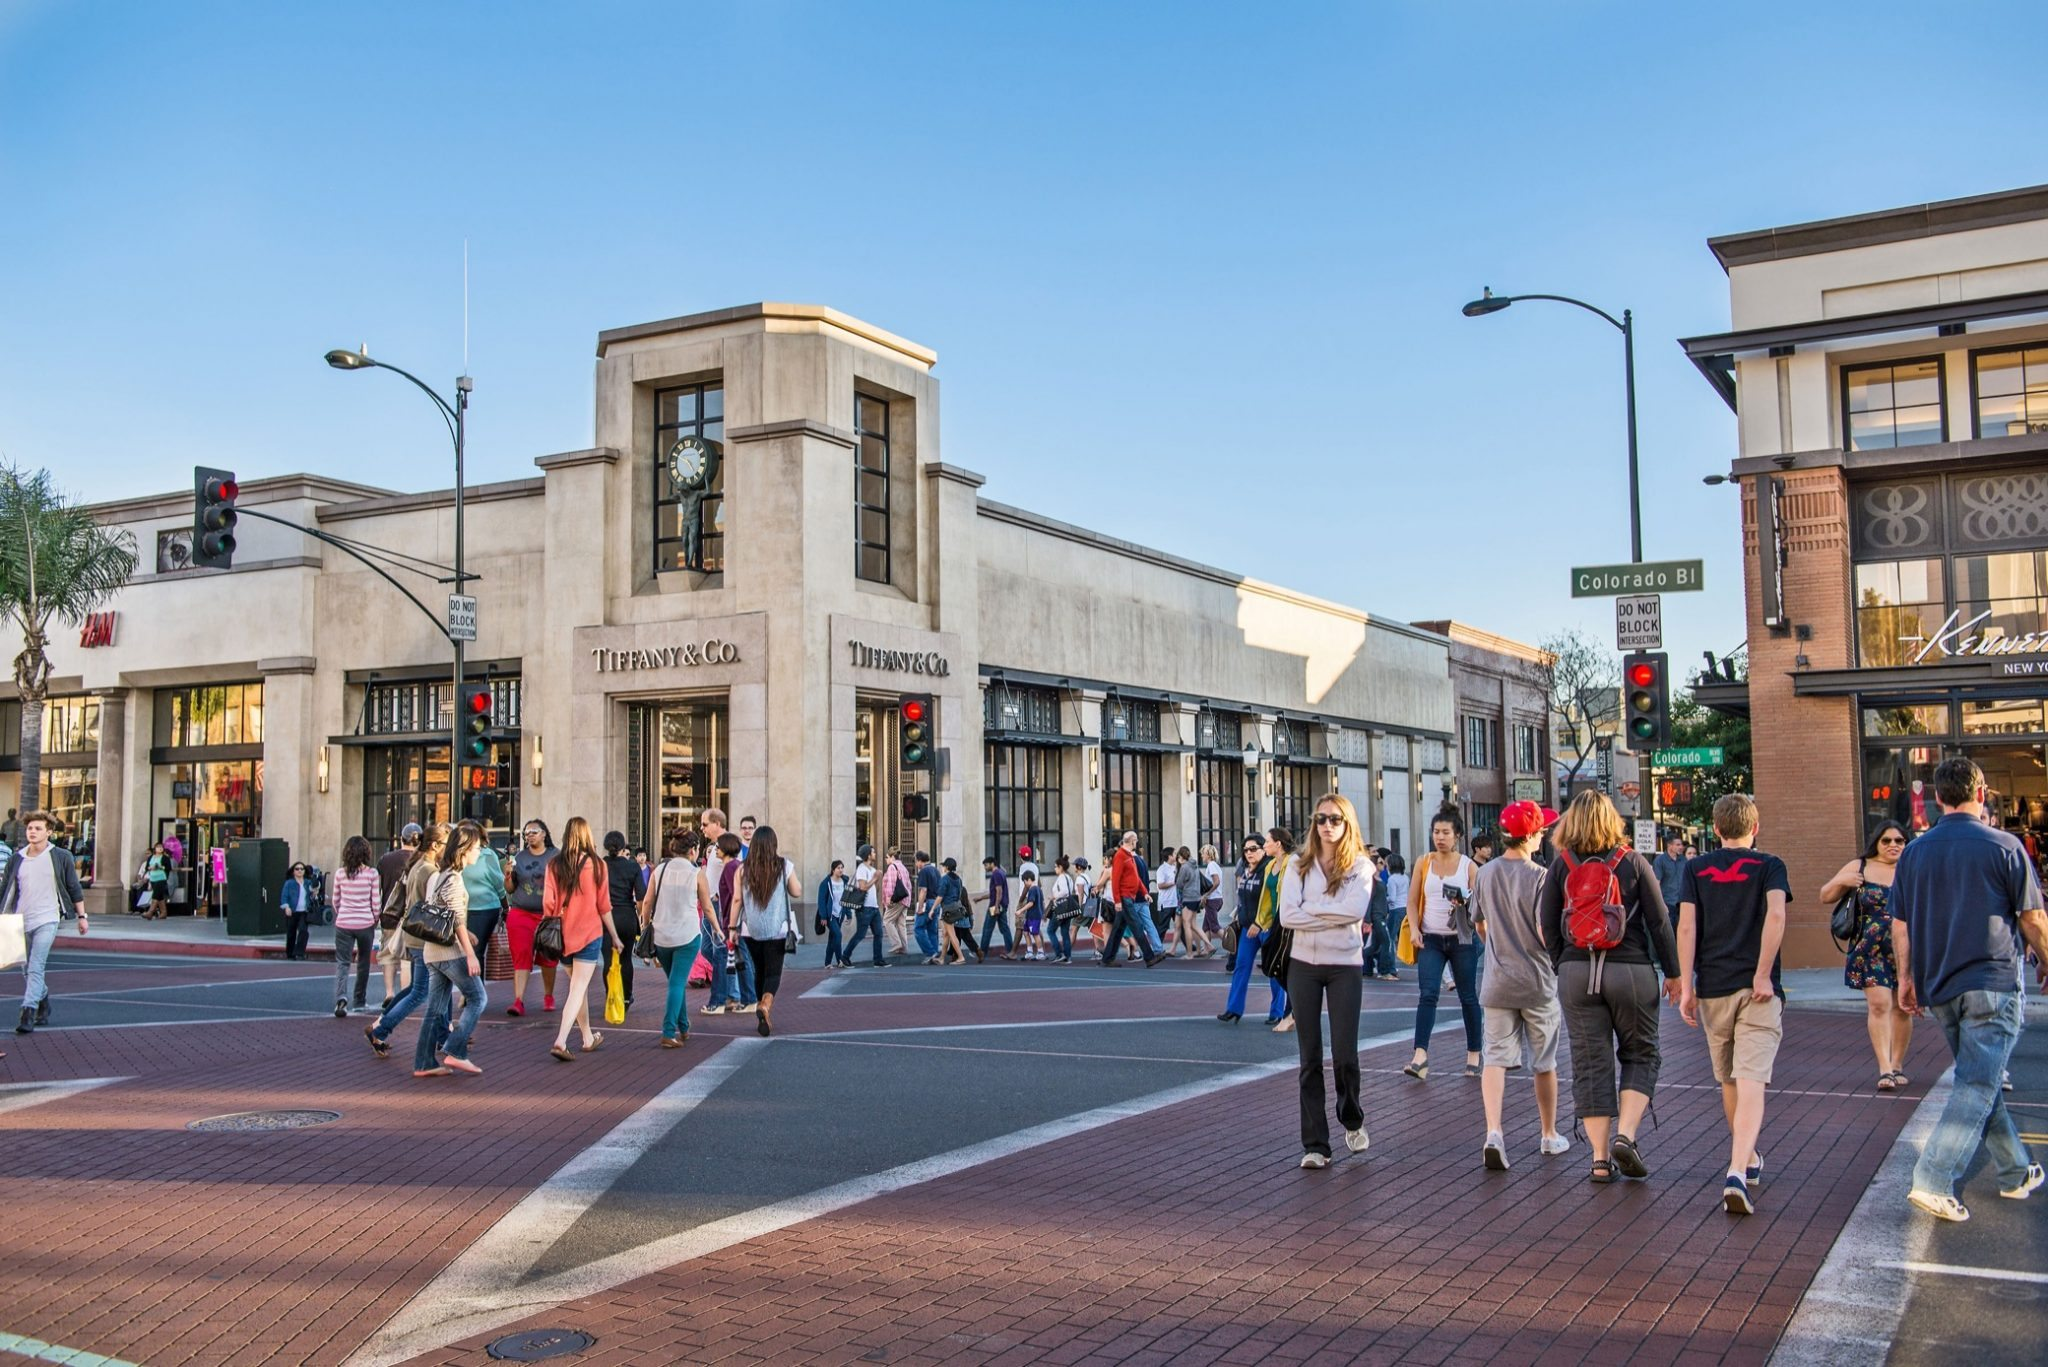 TalkToPaul Old Town Pasadena Dining Shopping Guide Luxury Real Estate Professional Athlete Relocation